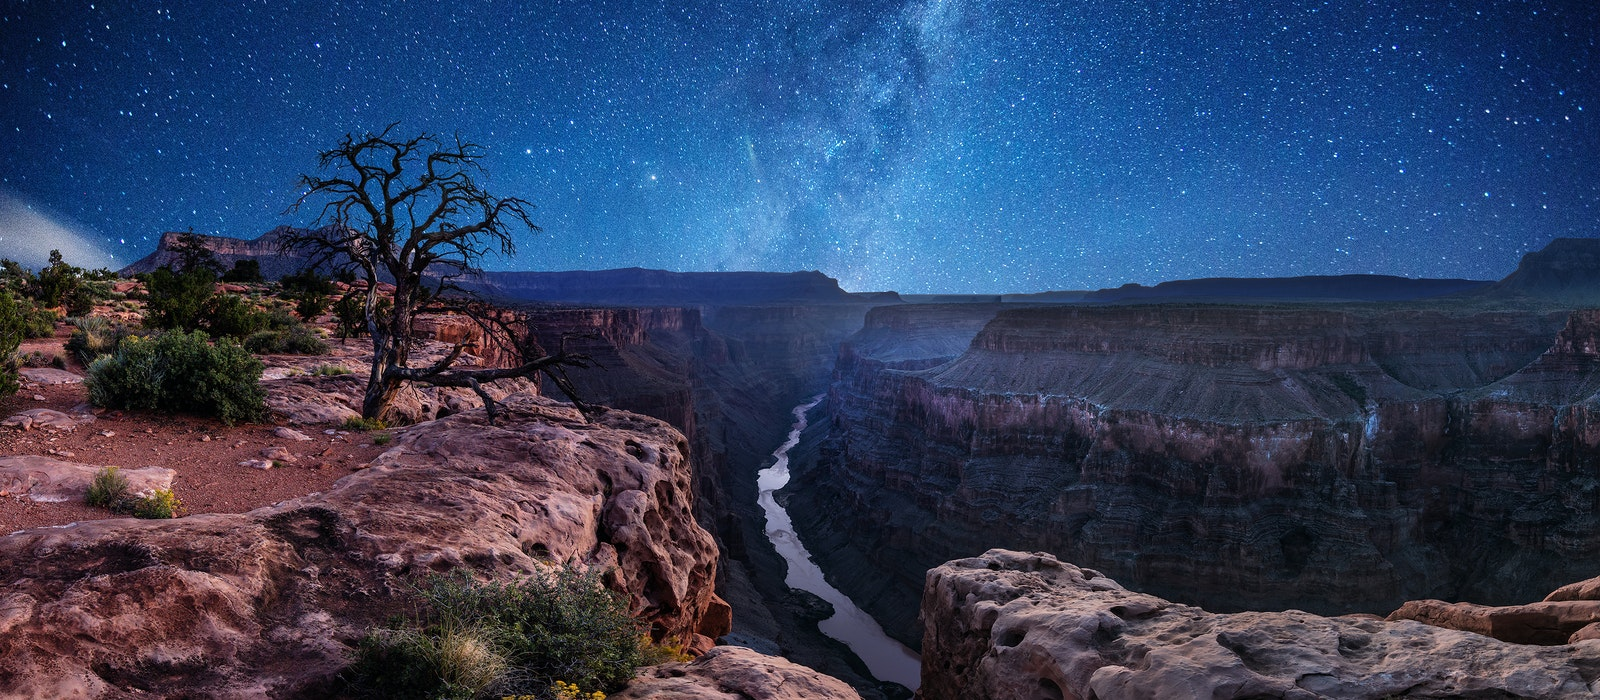 To celebrate its new Dark Sky Park status and its 100th anniversary, the Grand Canyon is hosting a Star Party each night between June 22–29.